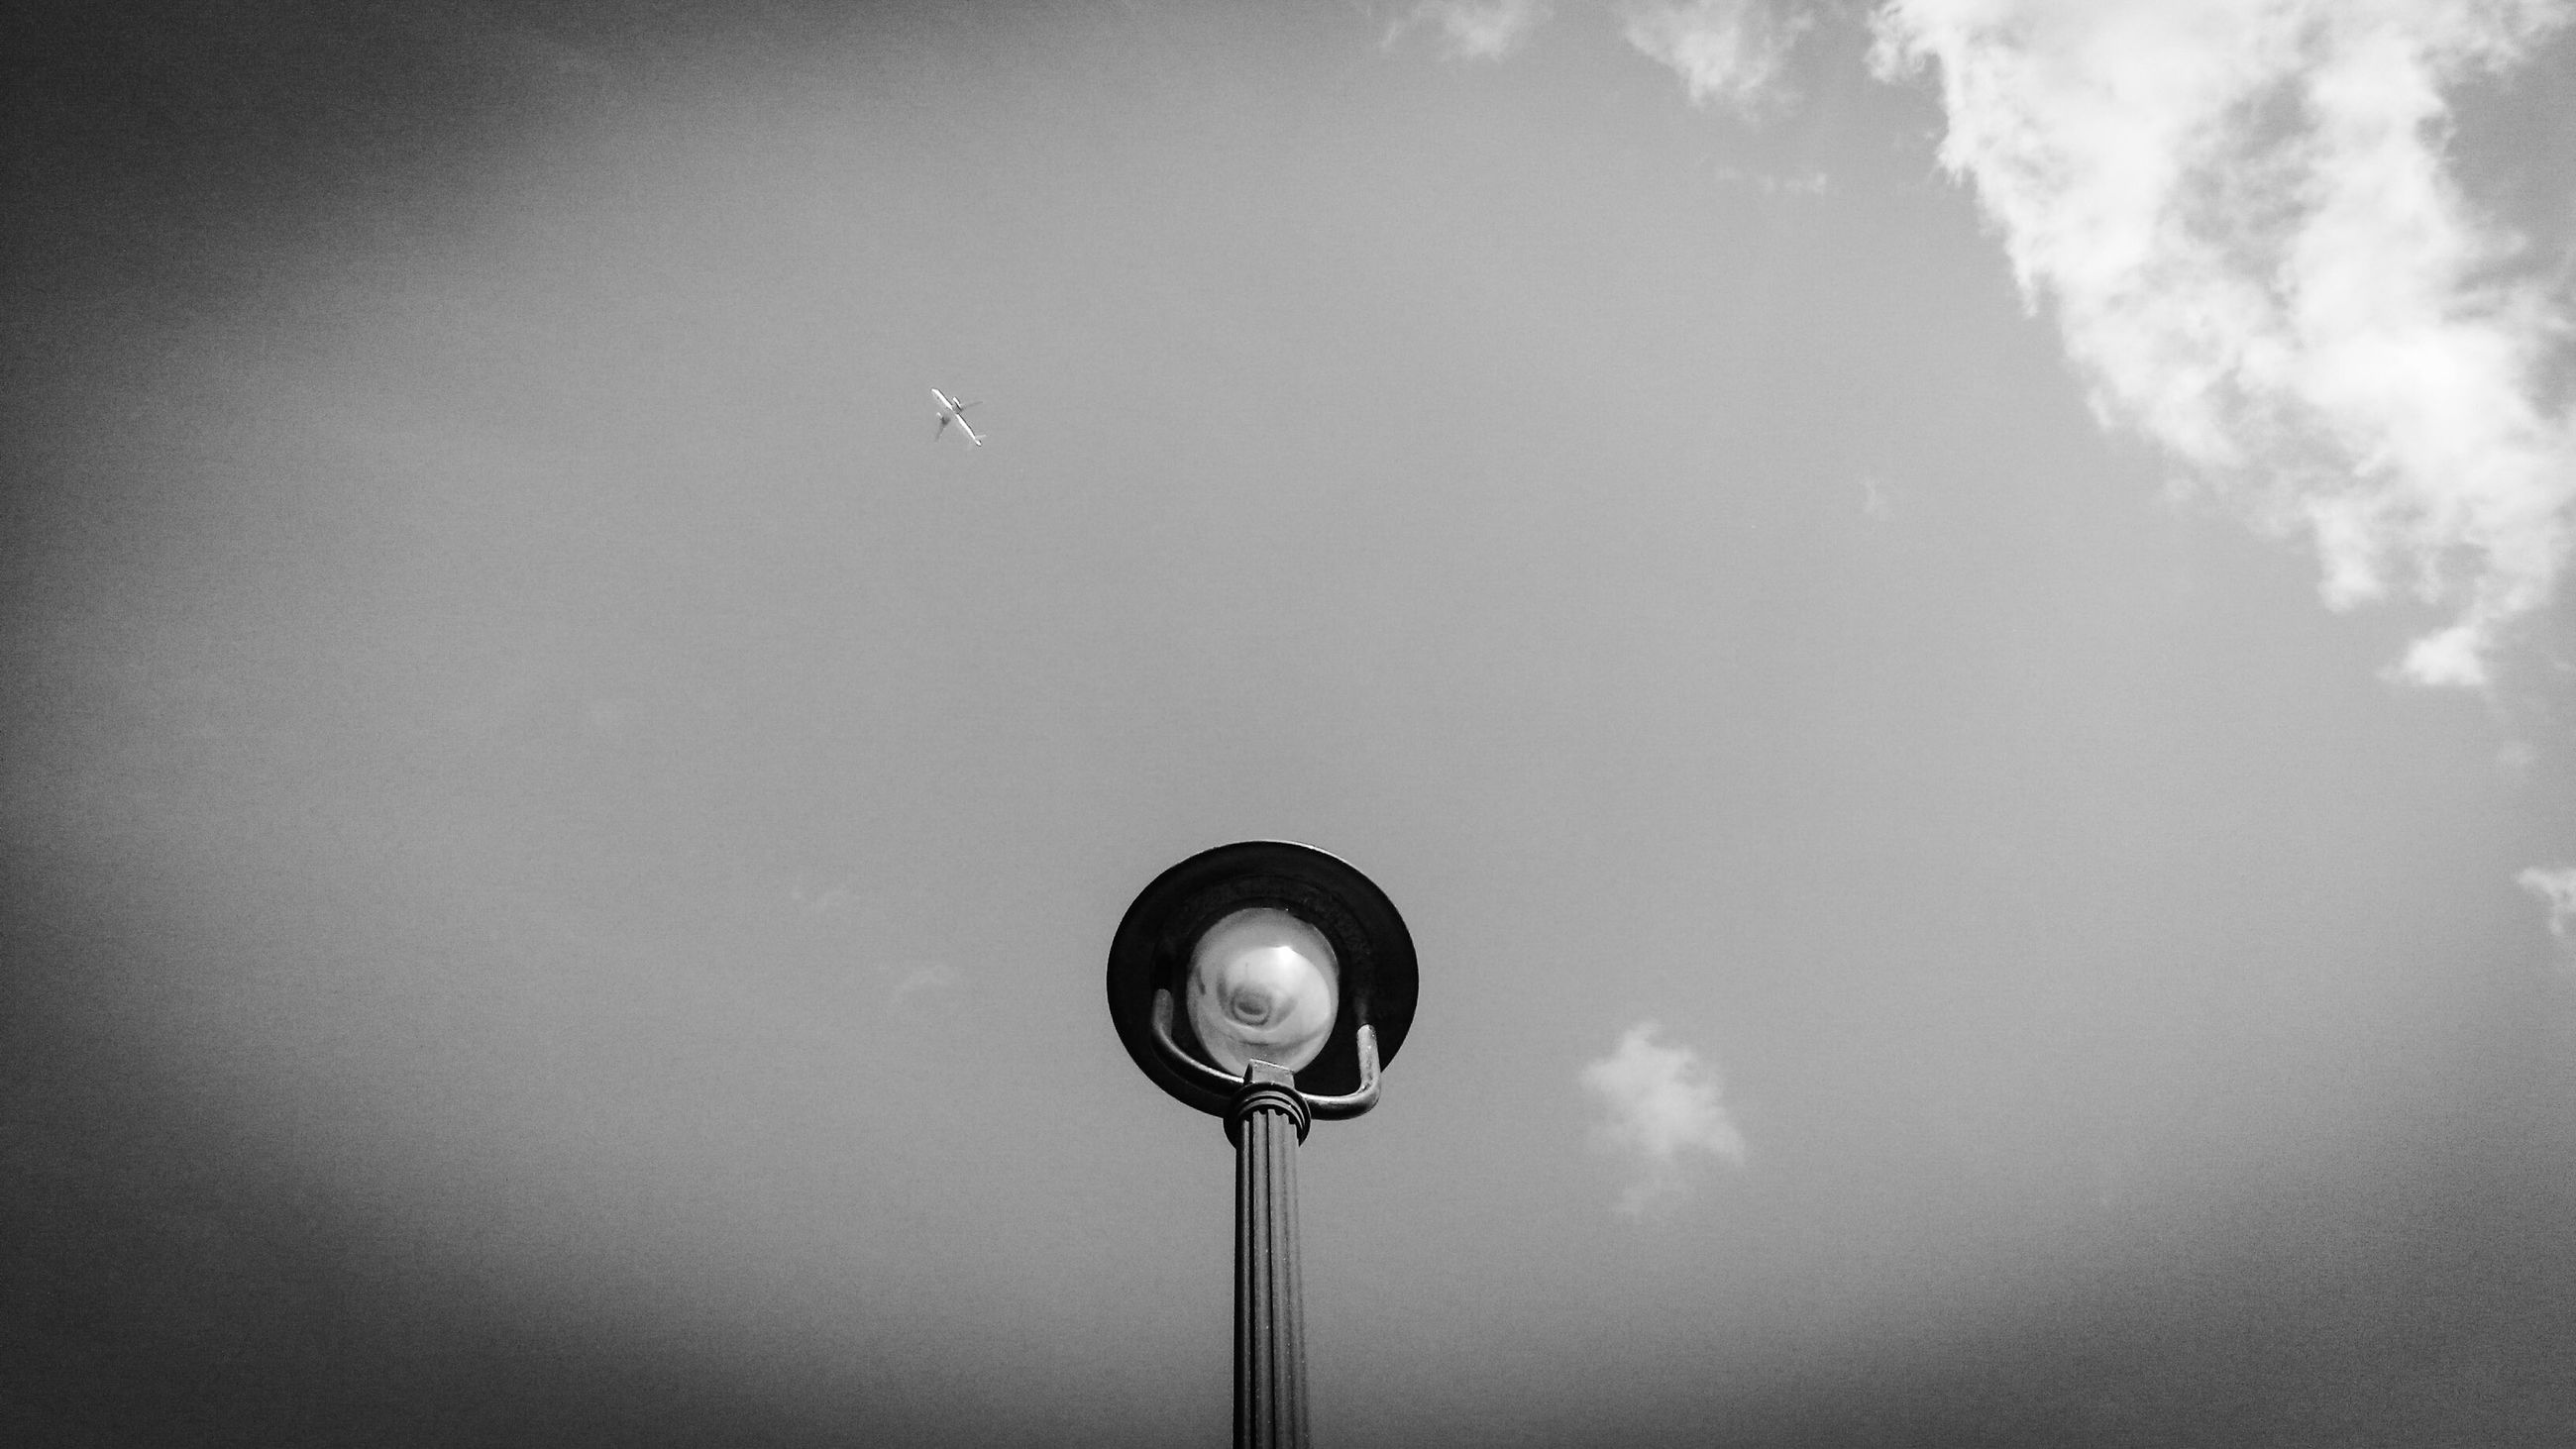 low angle view, street light, lighting equipment, sky, electricity, technology, electric light, cloud - sky, lamp post, built structure, no people, outdoors, day, nature, cloud, pole, high section, cloudy, silhouette, copy space